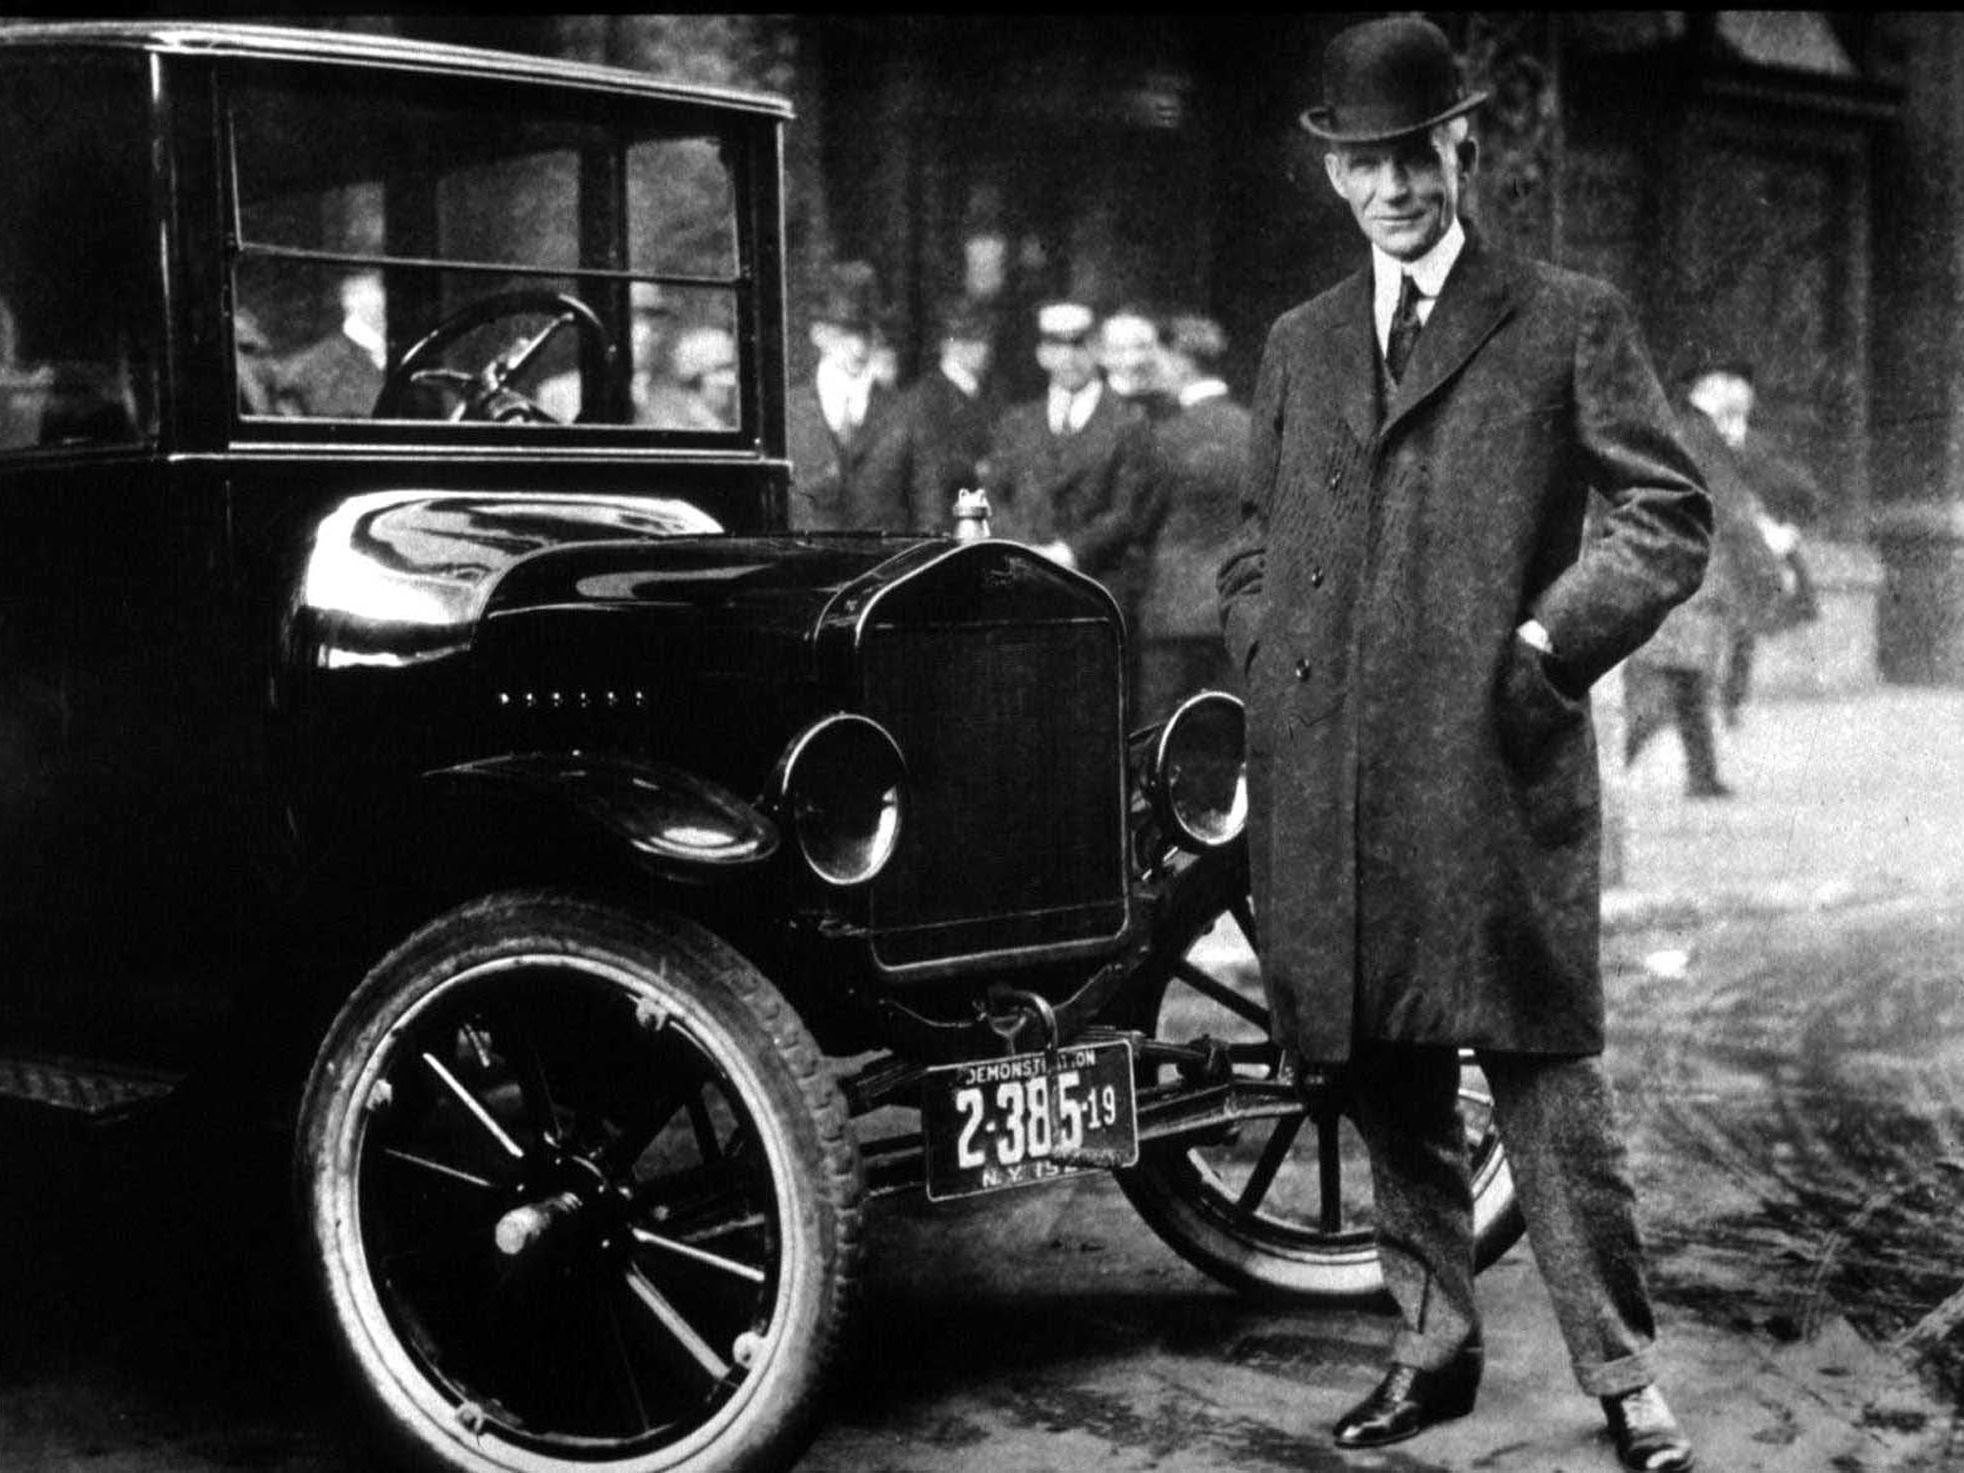 Biography of Henry Ford, Industrialist and Inventor